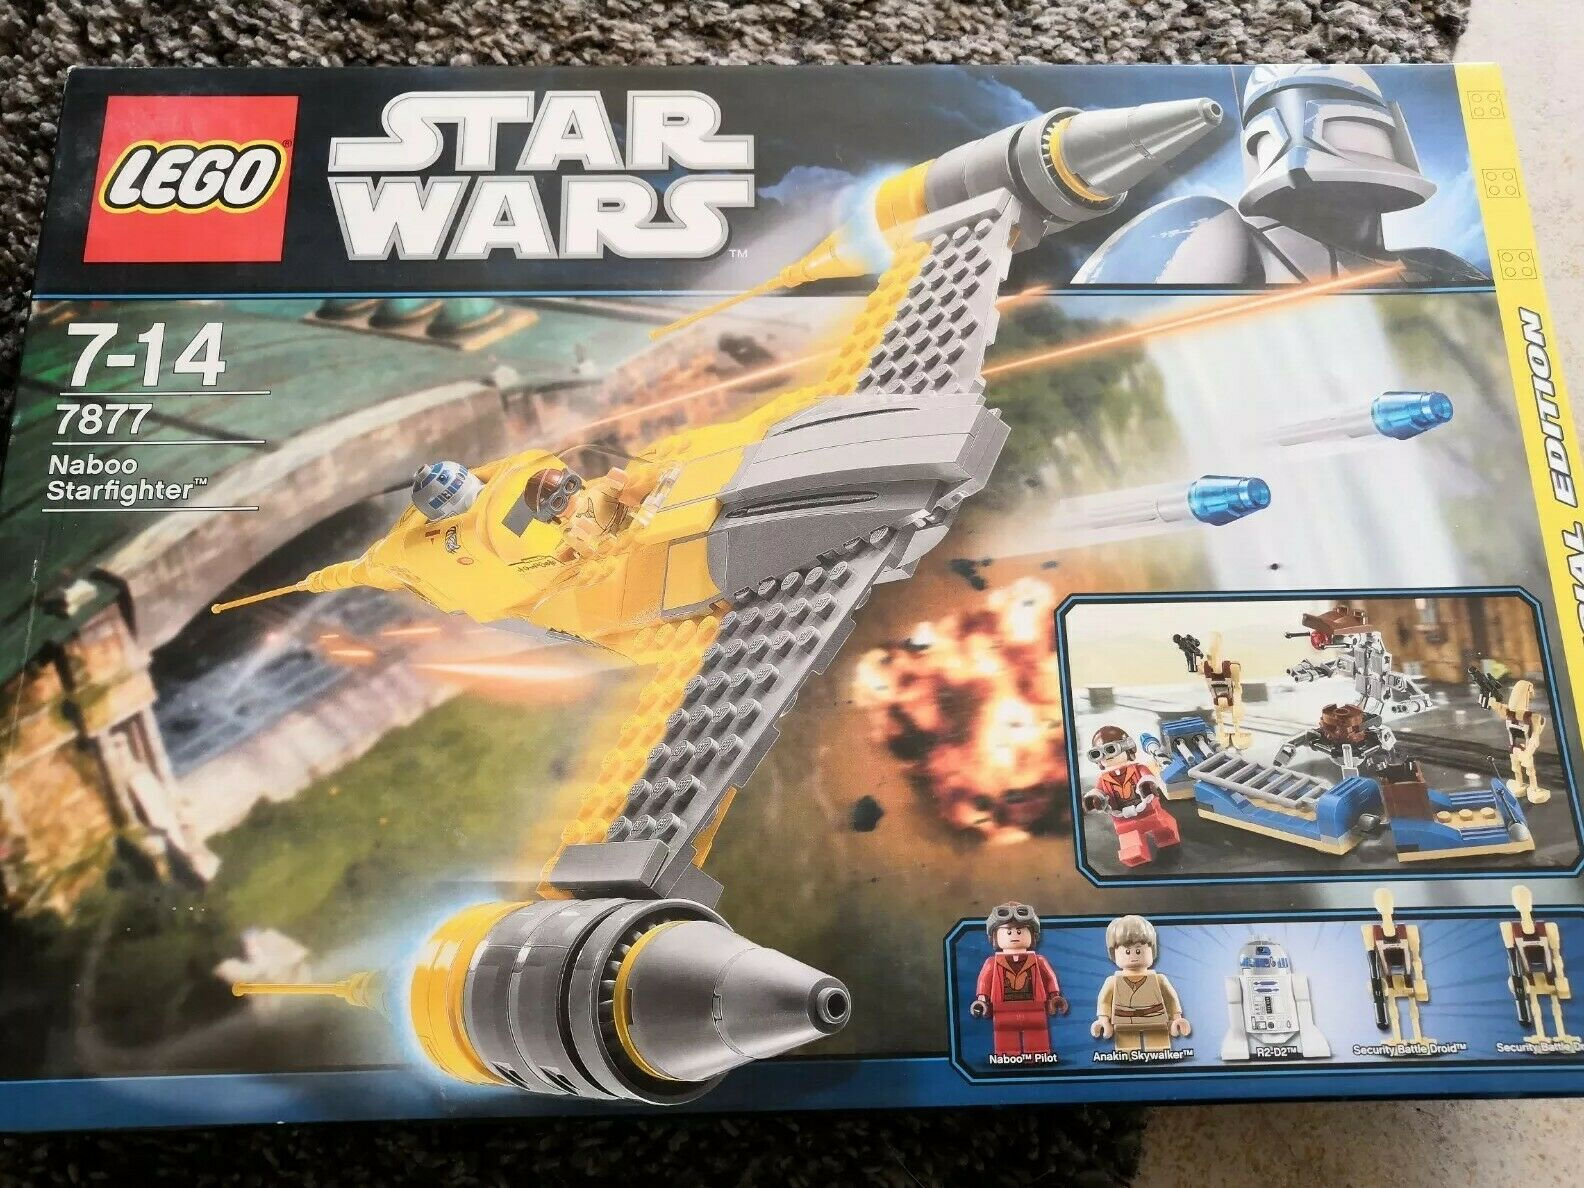 LEGO Star Wars Naboo Starfighter (7877)